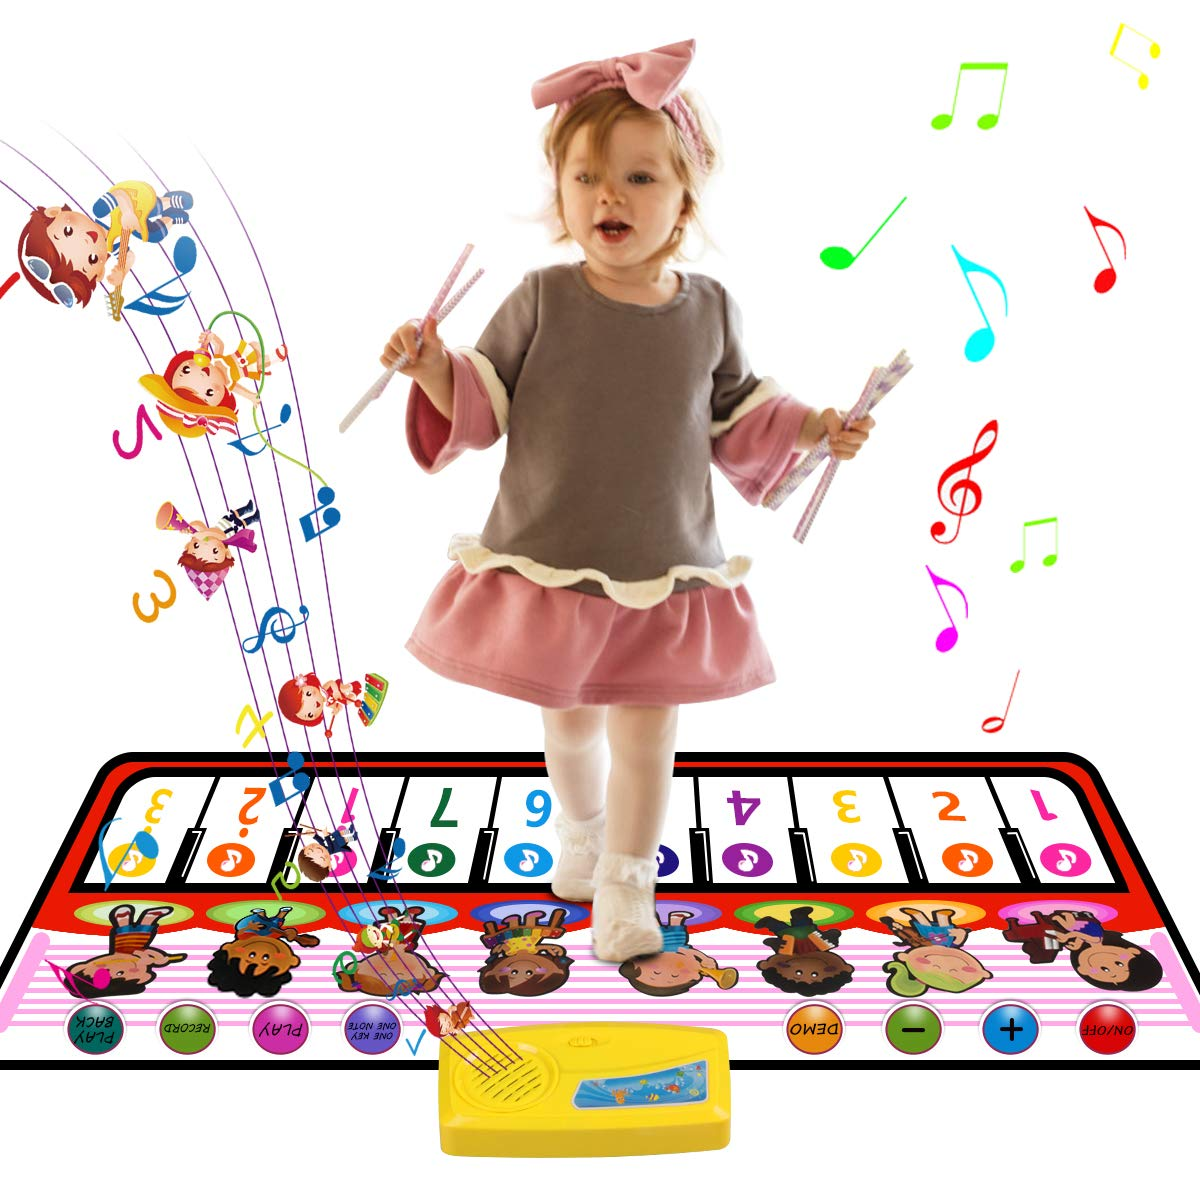 WOSTOO Piano Music Mat, Baby Early Education Electronic Music Piano Keyboard Playmat Colorful Dance Mat has 8 Selectable Musical Instruments for Little Boys Girls Baby by WOSTOO